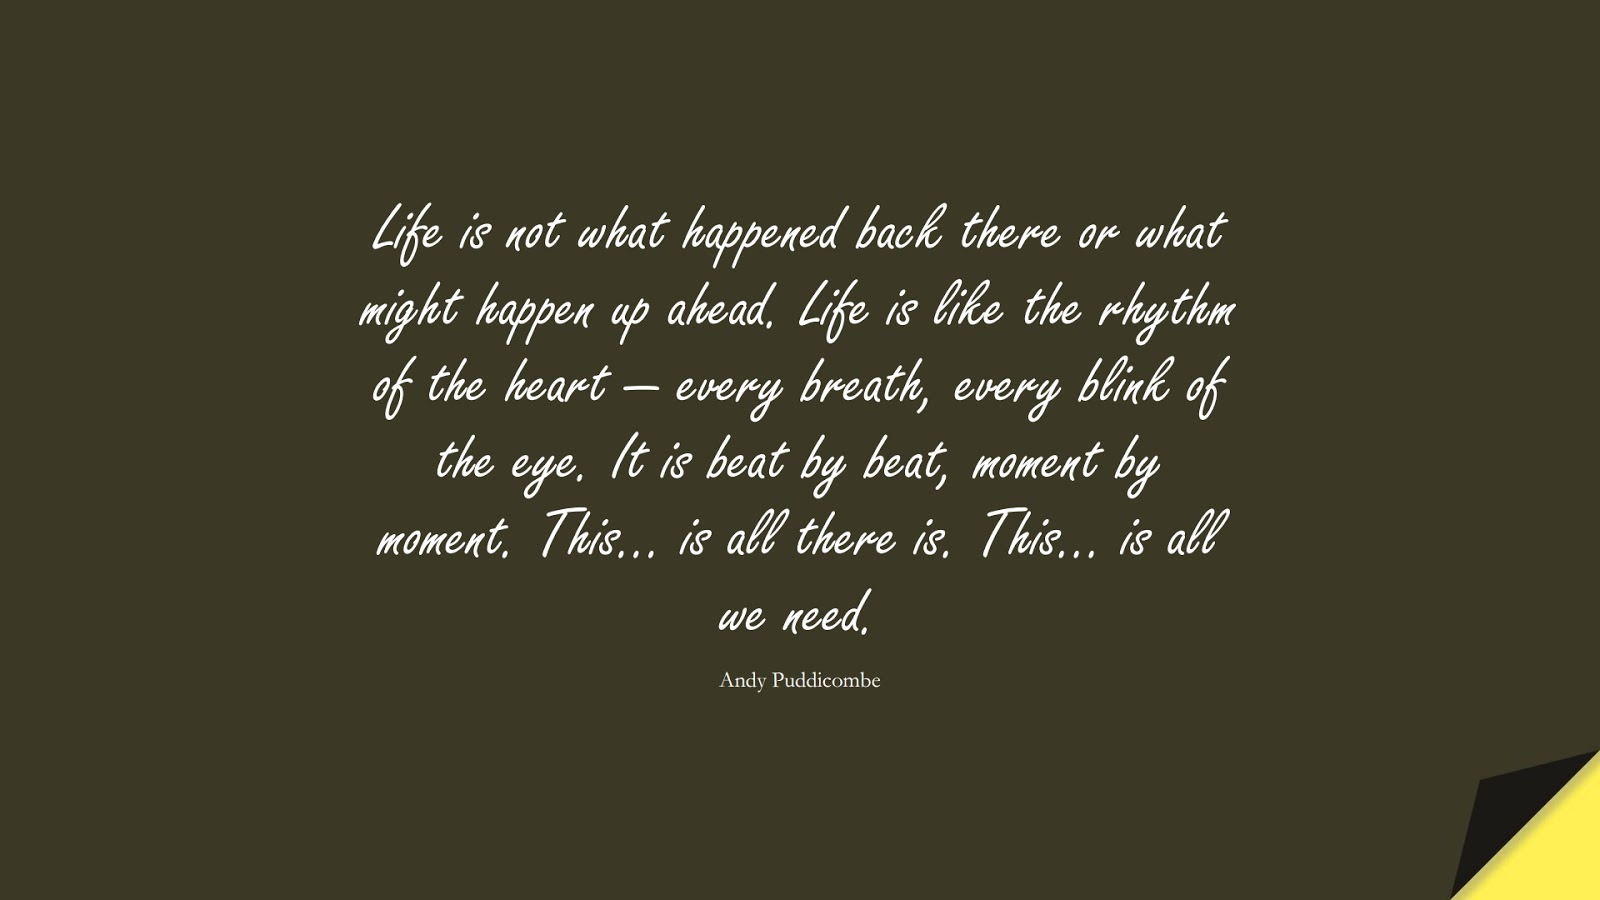 Life is not what happened back there or what might happen up ahead. Life is like the rhythm of the heart — every breath, every blink of the eye. It is beat by beat, moment by moment. This… is all there is. This… is all we need. (Andy Puddicombe);  #LifeQuotes